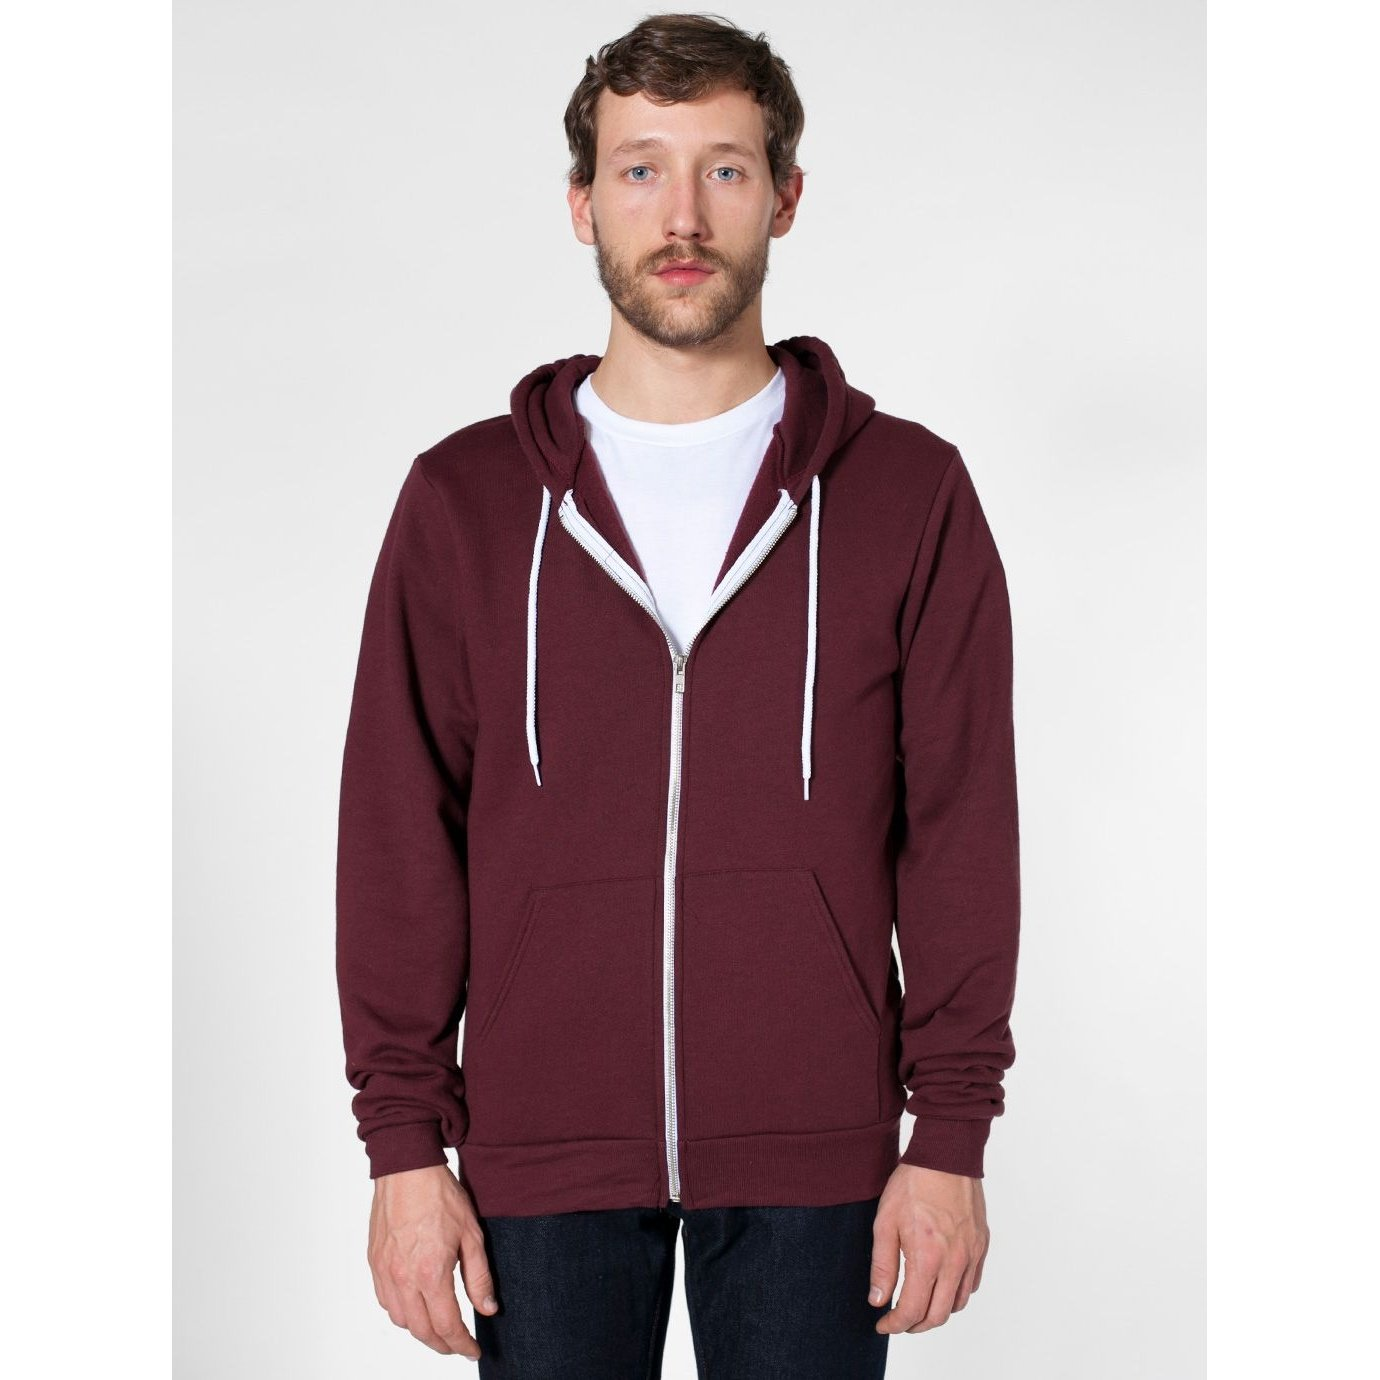 American Apparel Unisex Flex Plain Full Zip Fleece Hoodie